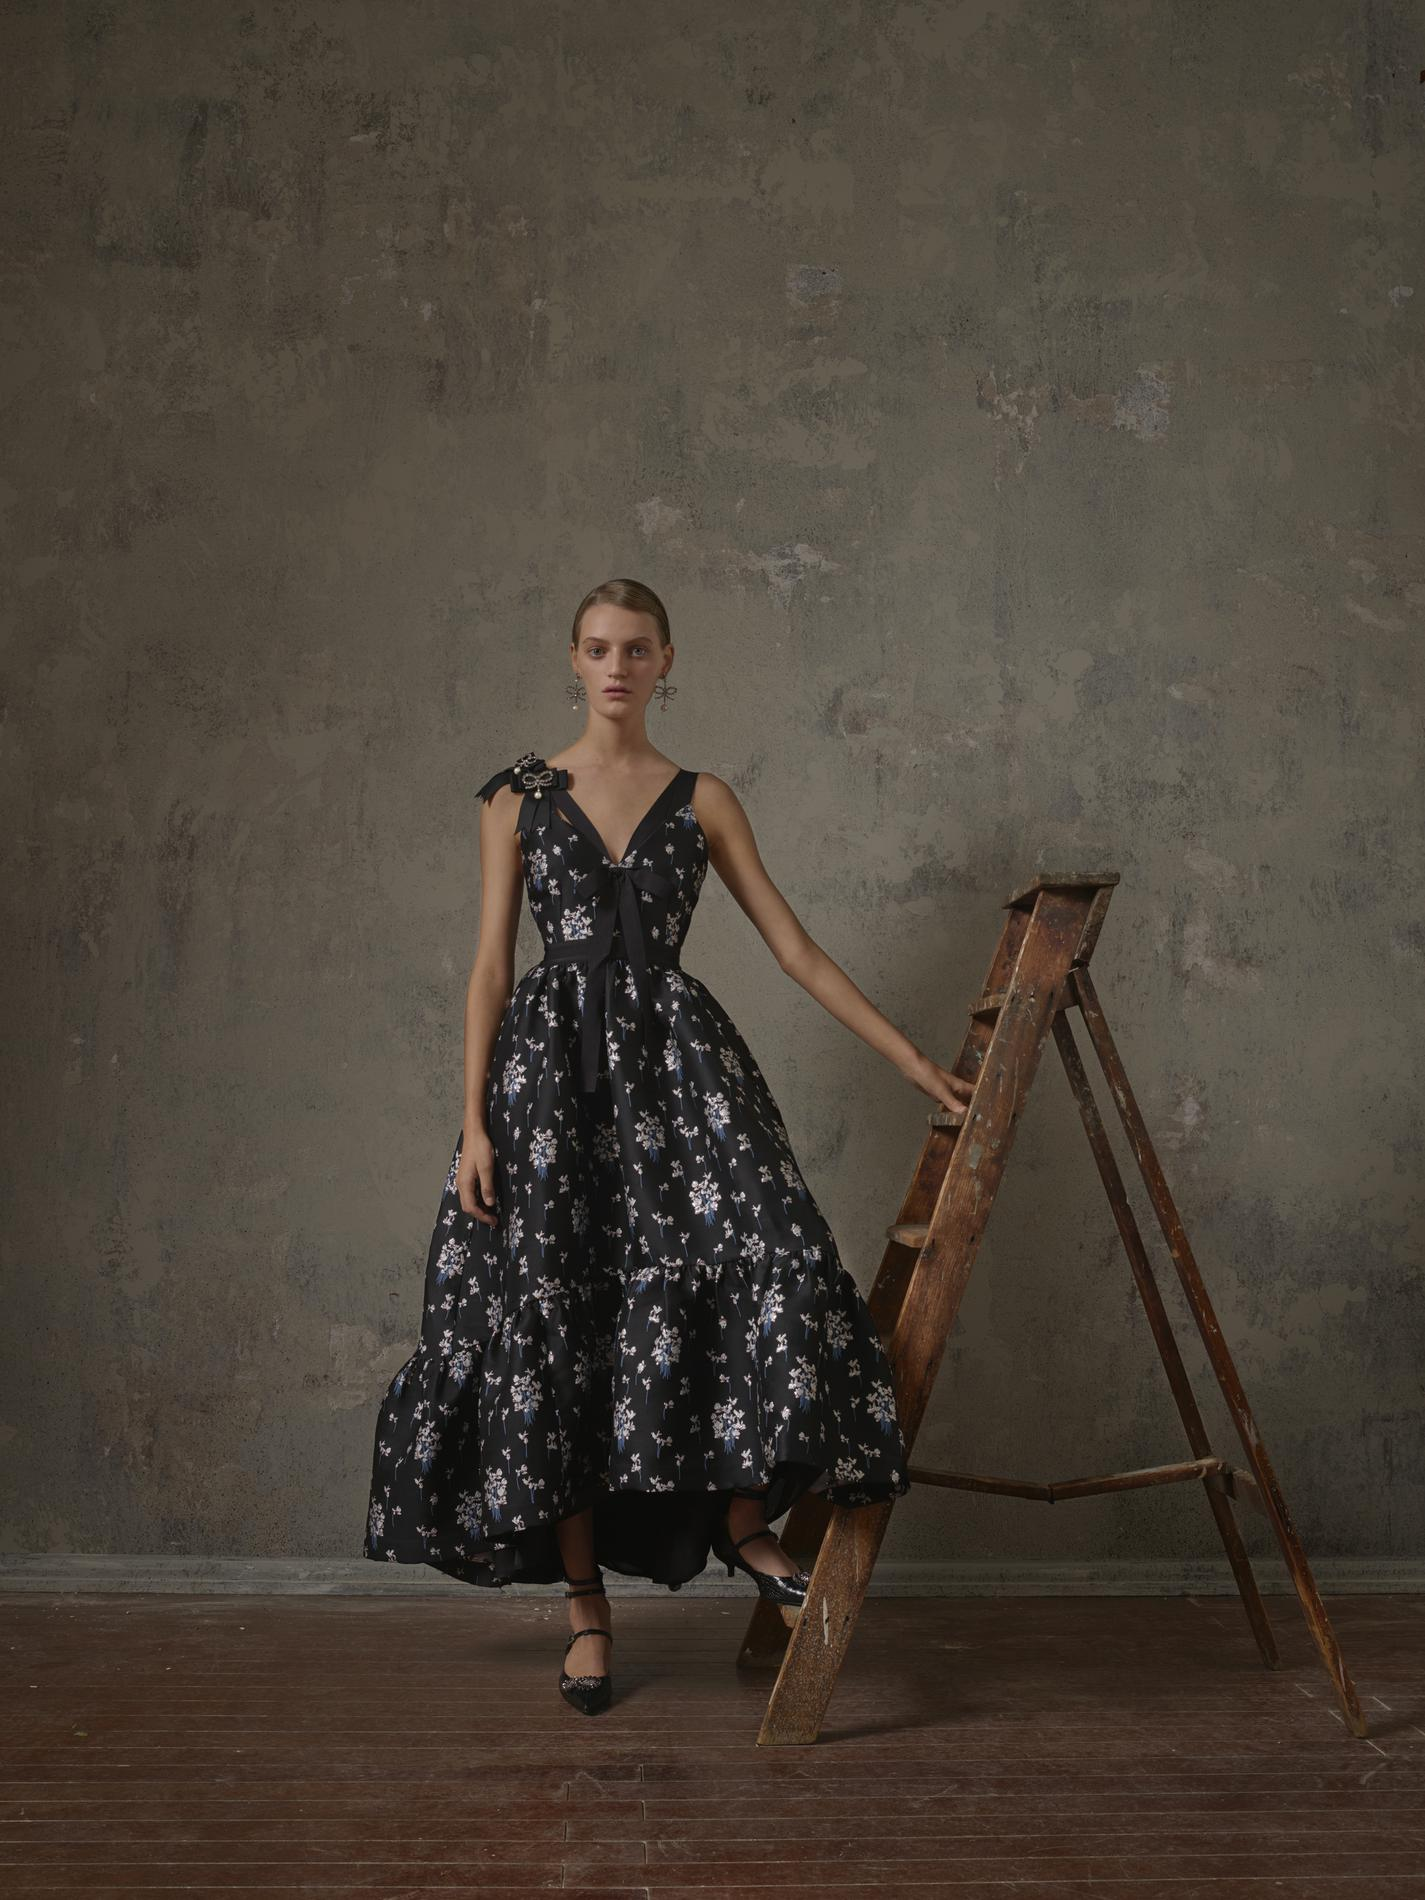 le-lookbook-de-la-collaboration-hampm-x-erdem-photo-13